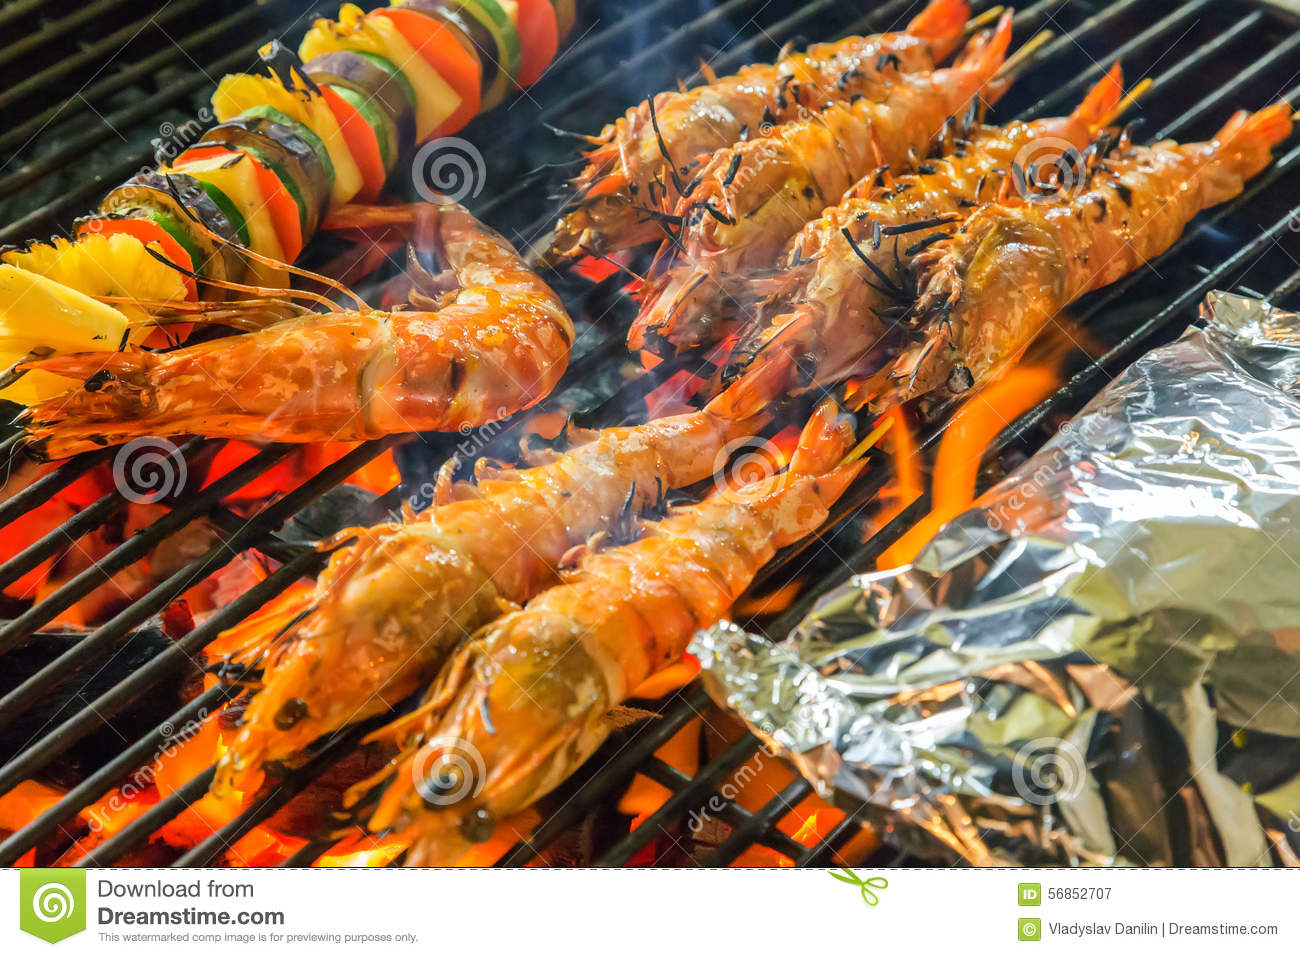 Grilled Seafood On The Grill Stock Image - Image: 56852707